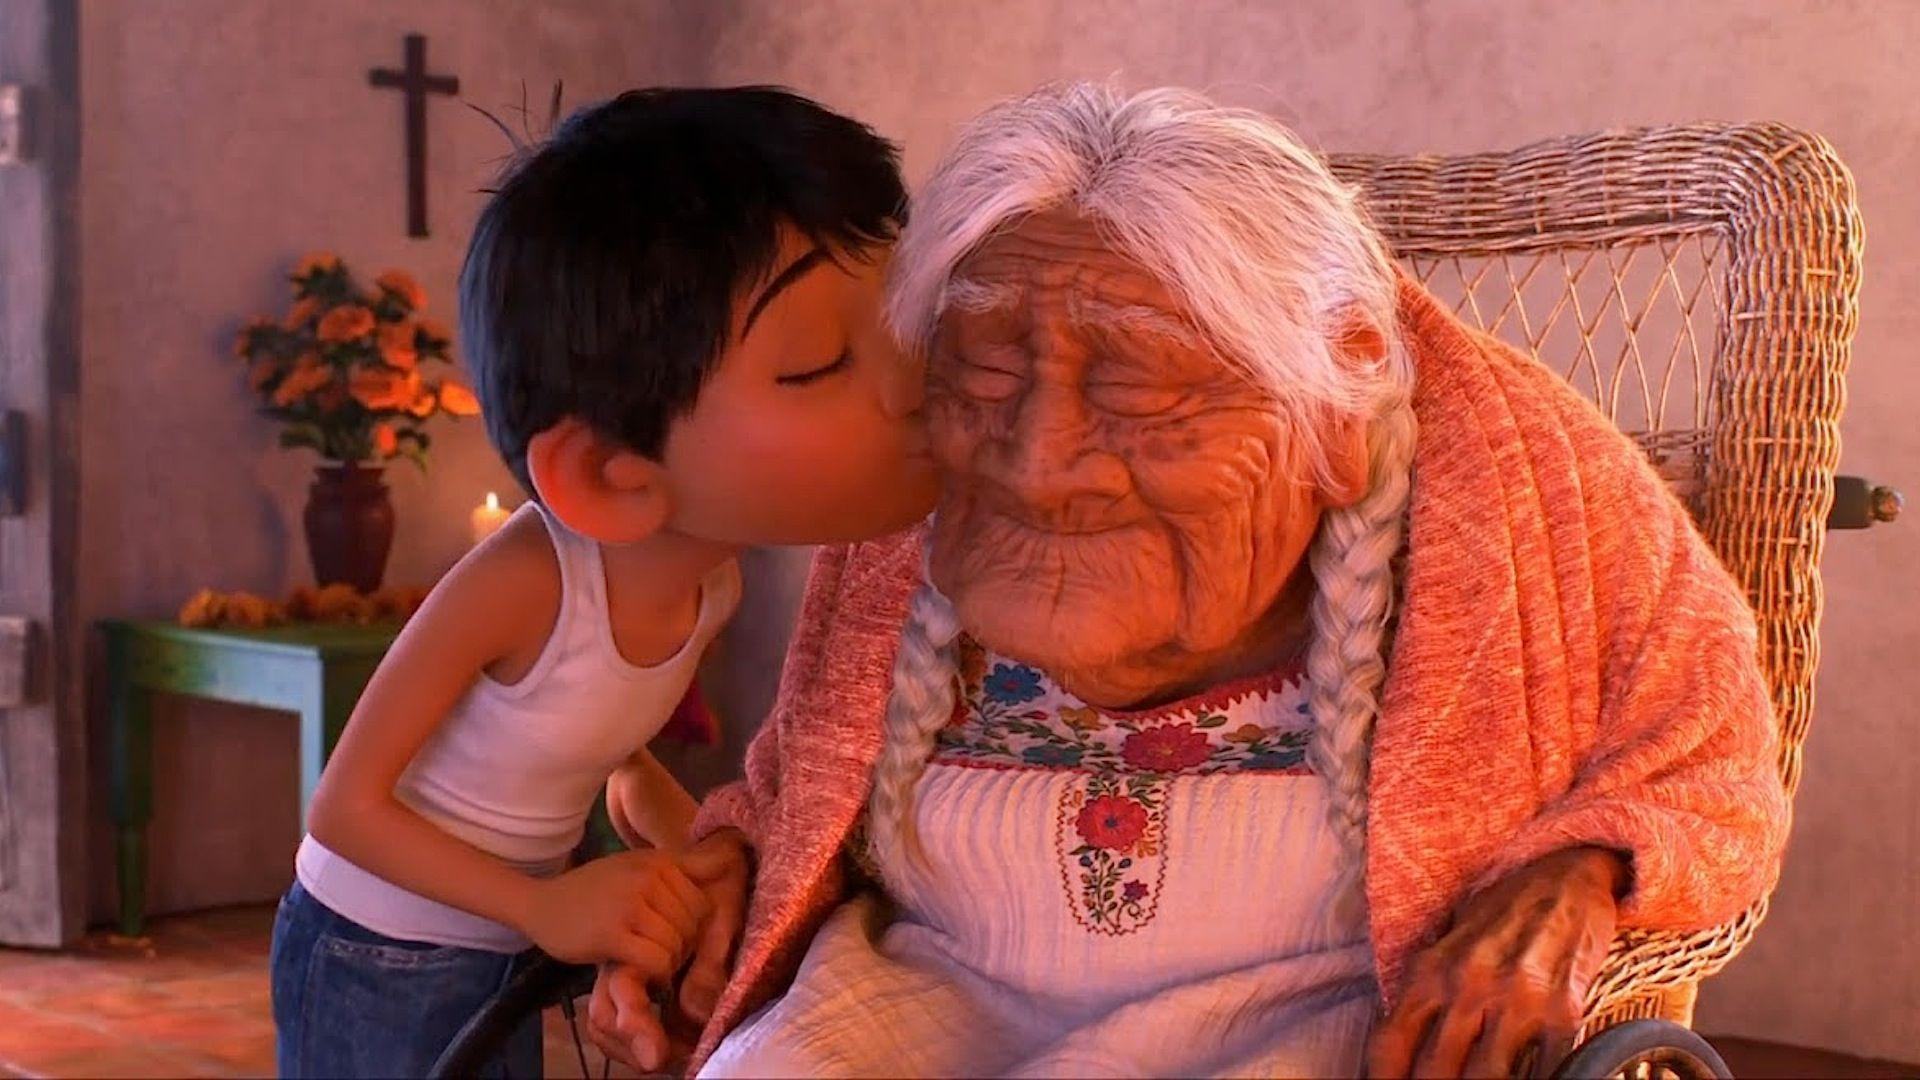 5 Things We Learned About Pixar's Coco